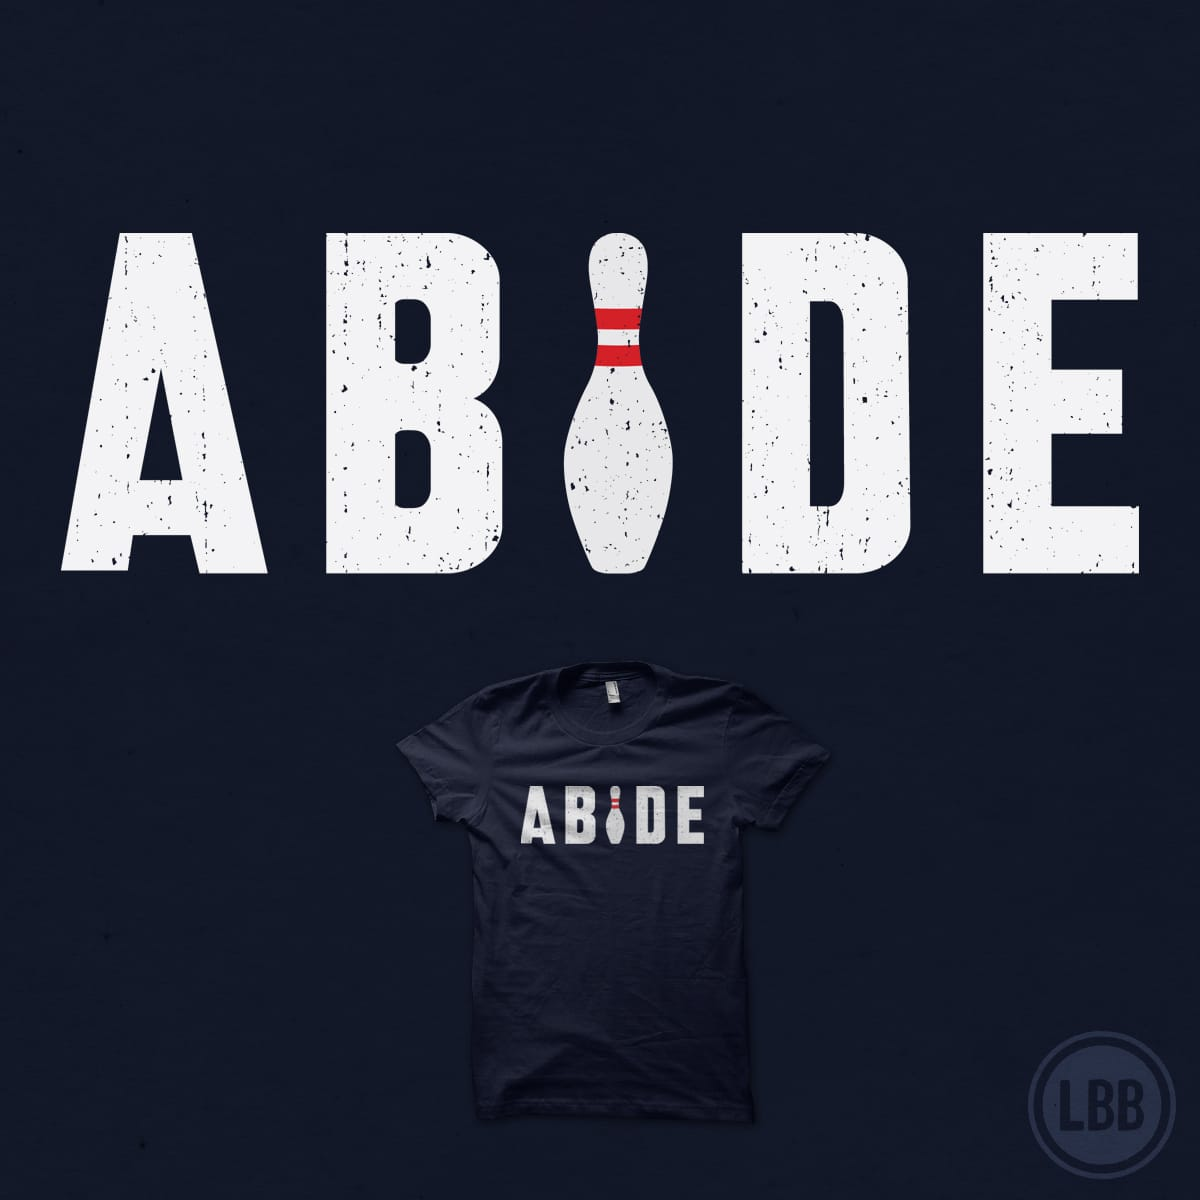 Abide by lunchboxbrain on Threadless